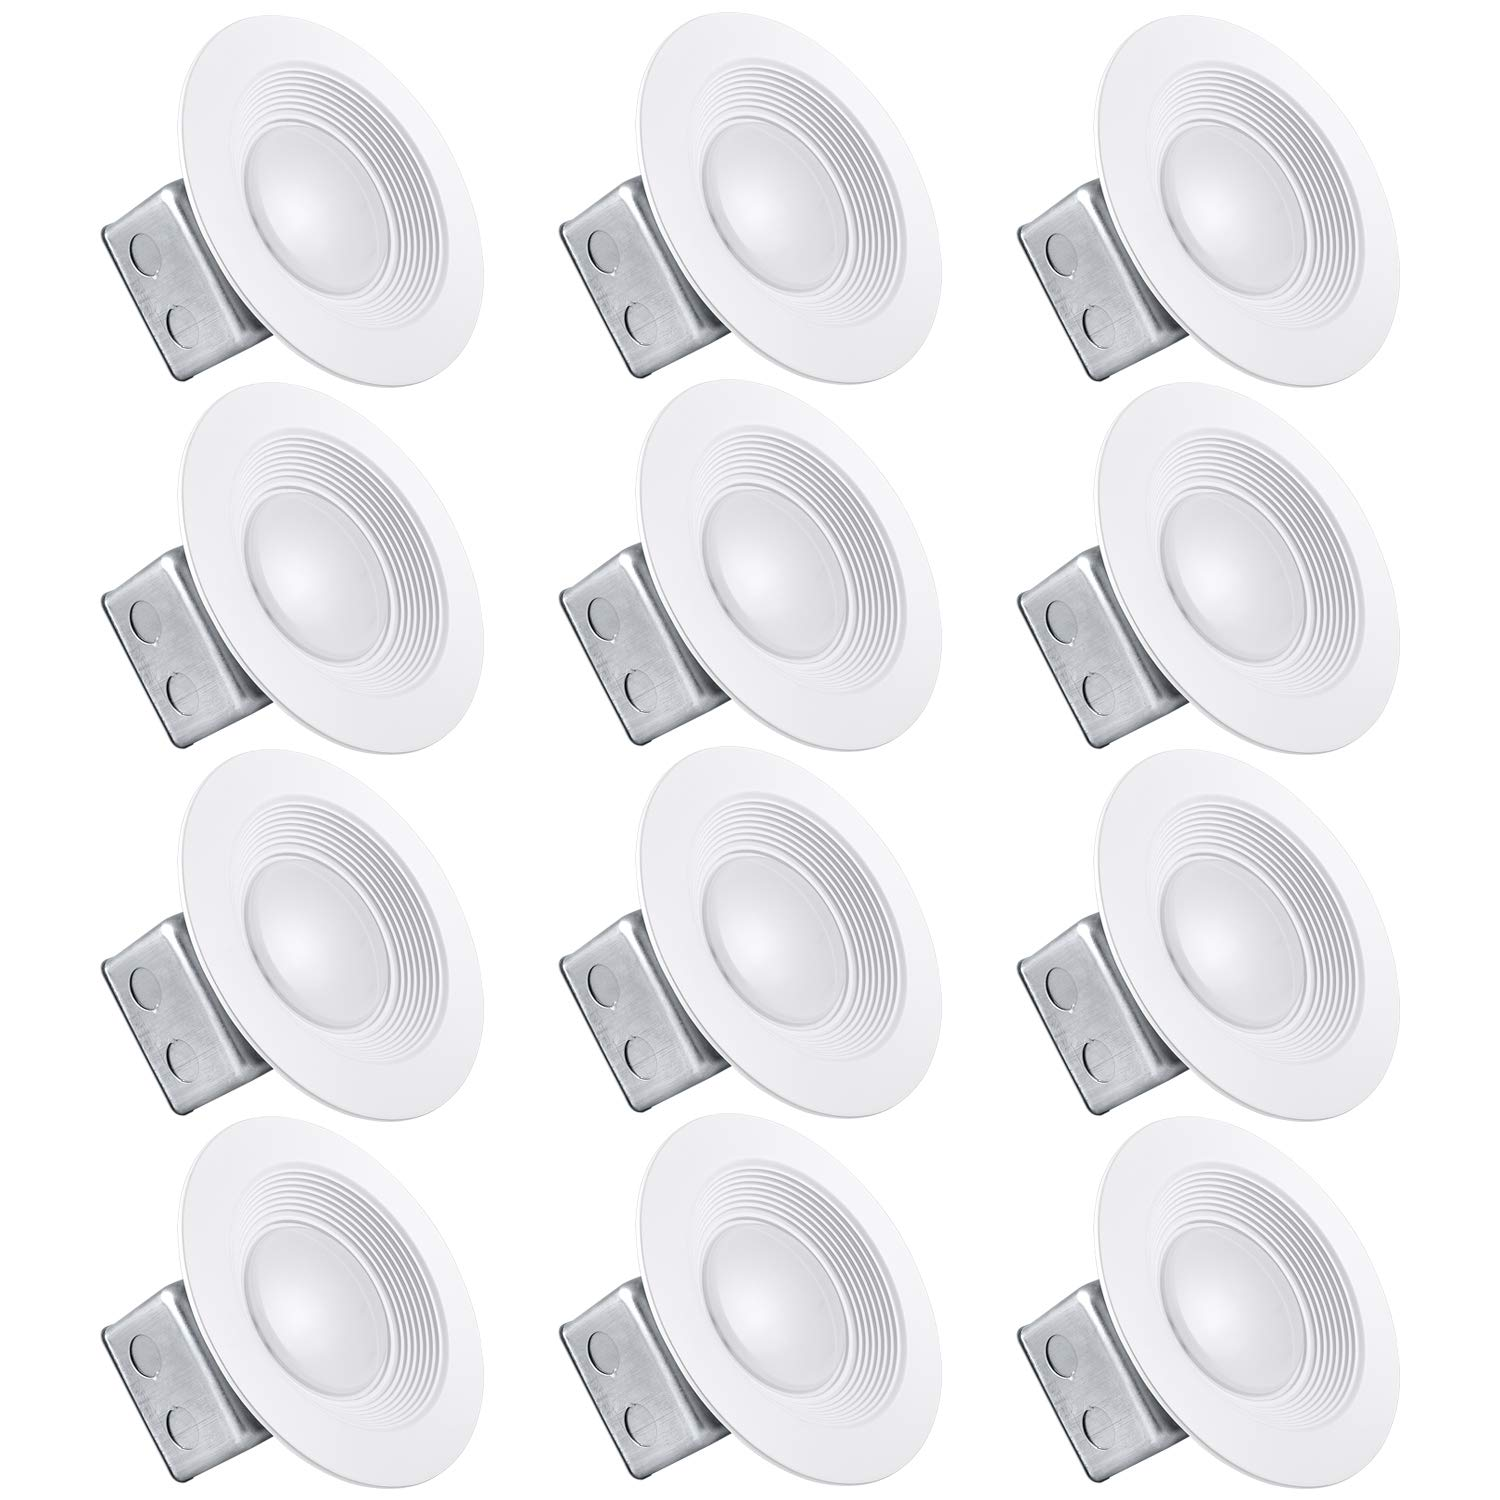 Luxrite 5/6 Inch LED Recessed Light with Junction Box, 15W, 5000K Bright White, Dimmable Airtight Downlight, 1100 Lumens, Energy Star, IC & Wet Rated, 120V - 277V, Recessed Lighting Kit (12 Pack)